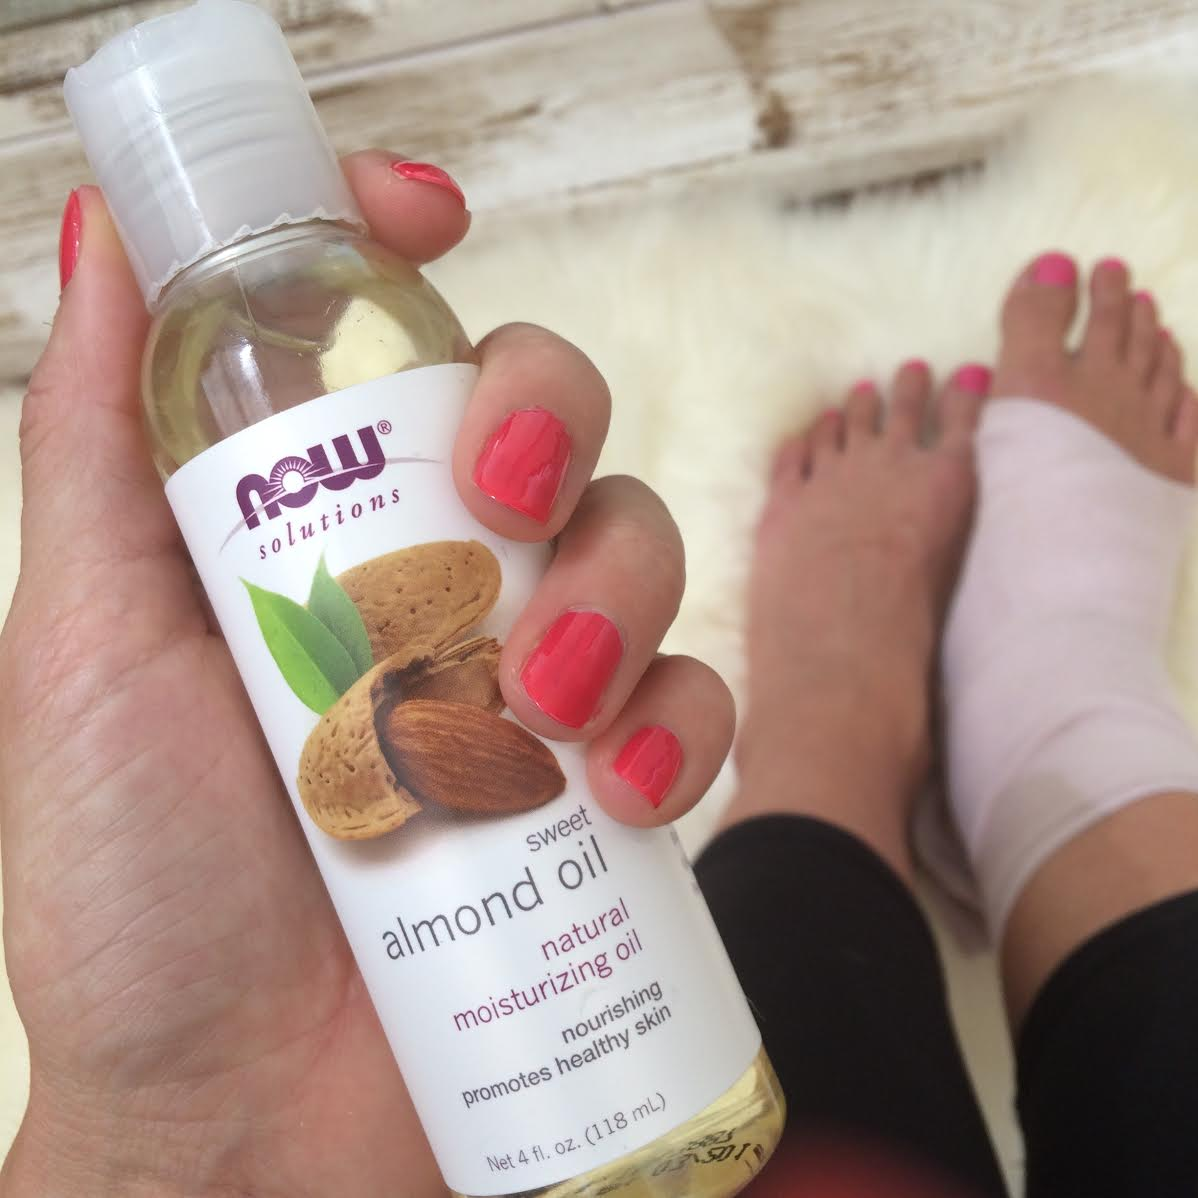 Massage oil  for a sprained ankle.